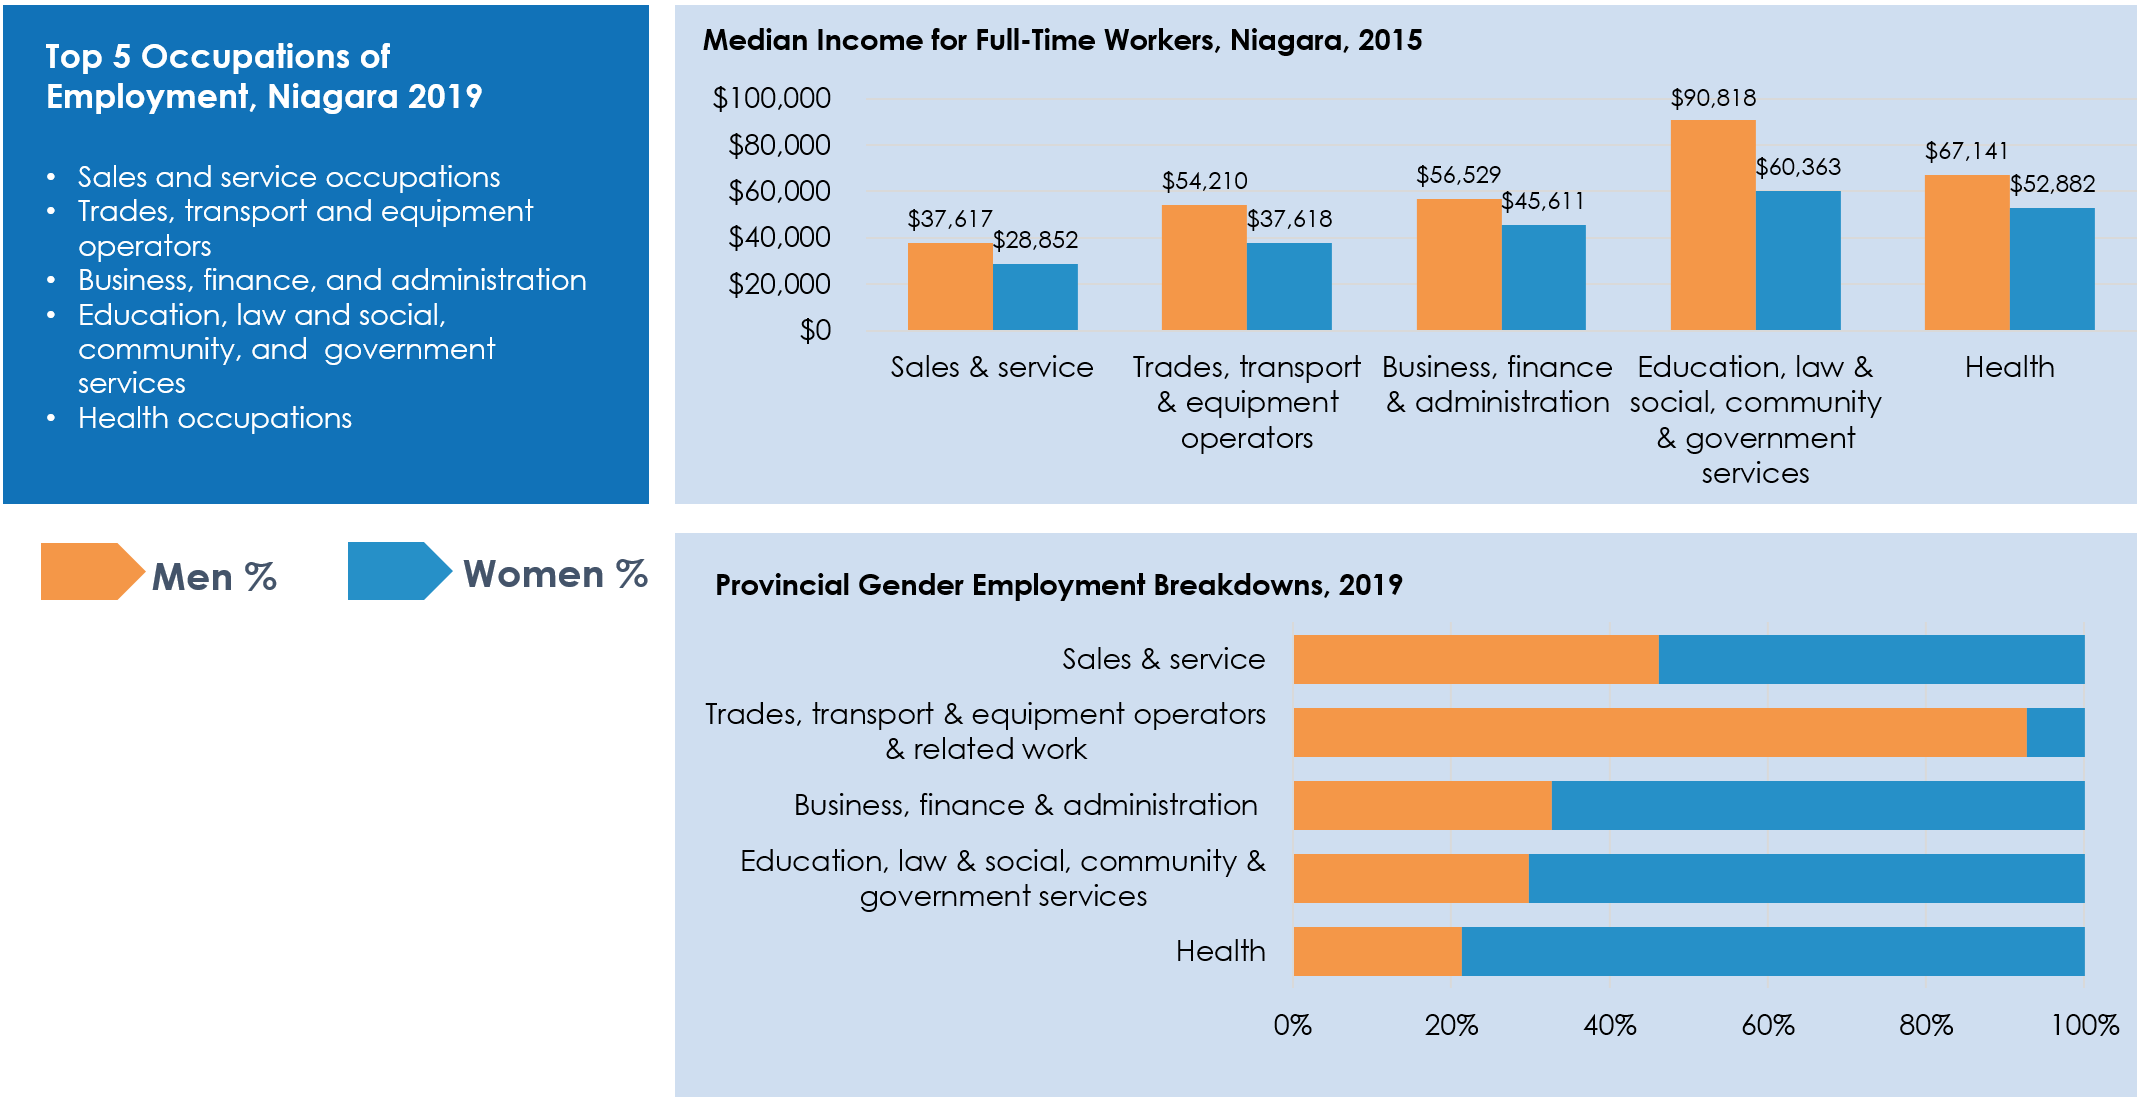 Infographic showing the following data: The top 5 occupations of employment in Niagara, 2019, were sales & service; trades, transport & equipment operators; business, finance & administration; education, law & social, community & government services; and health. Men's median income tended to be between $10,000 and $30,000 more than women's median income within these fields, with the largest gap in education, law & social, community & government services. Women tend to represent the majority of those employed in these fields, with the exception of trades, transport & equipment operators & related work - over 90% of people working in this occupation are men. Women tend to be more represented in health at roughly 80%; education, law & social, community & government services and business, finance & administration at closer to 75%. In sales & service the numbers are closer to equal, with women representing roughly 60% of this workforce.